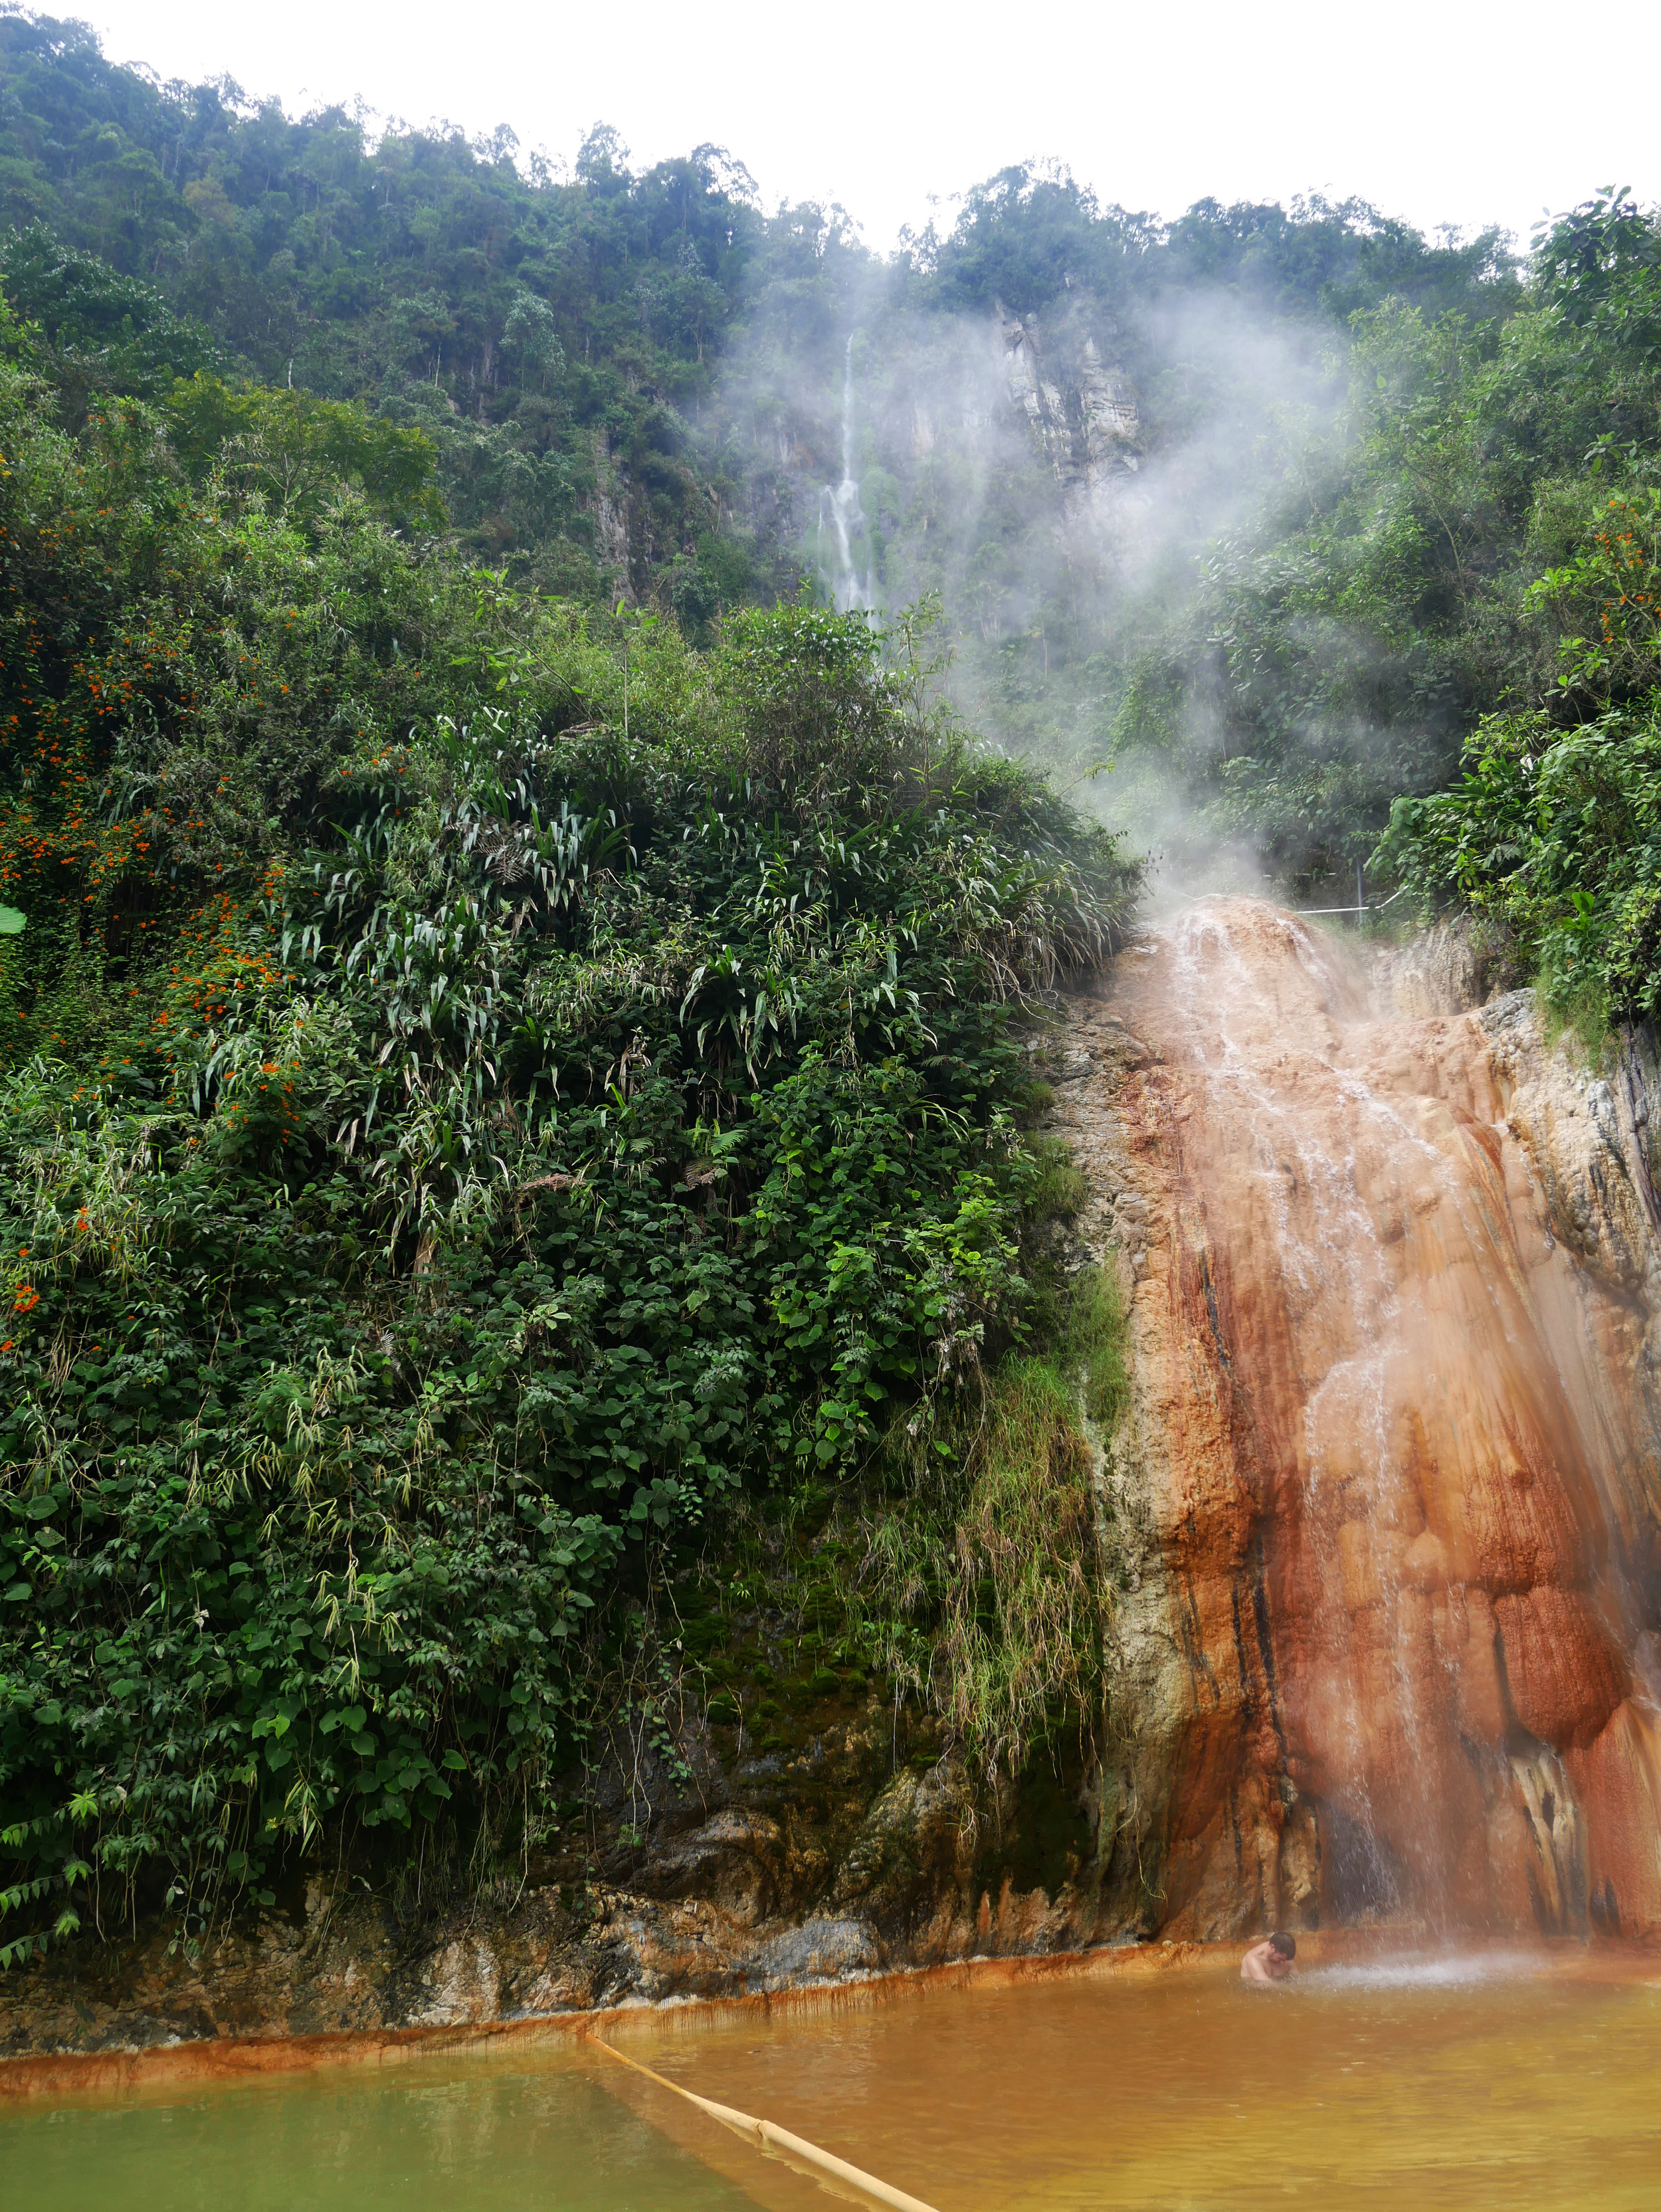 Steamy hot springs in Santa Rosa, Colombia to help you switch into relaxation mode